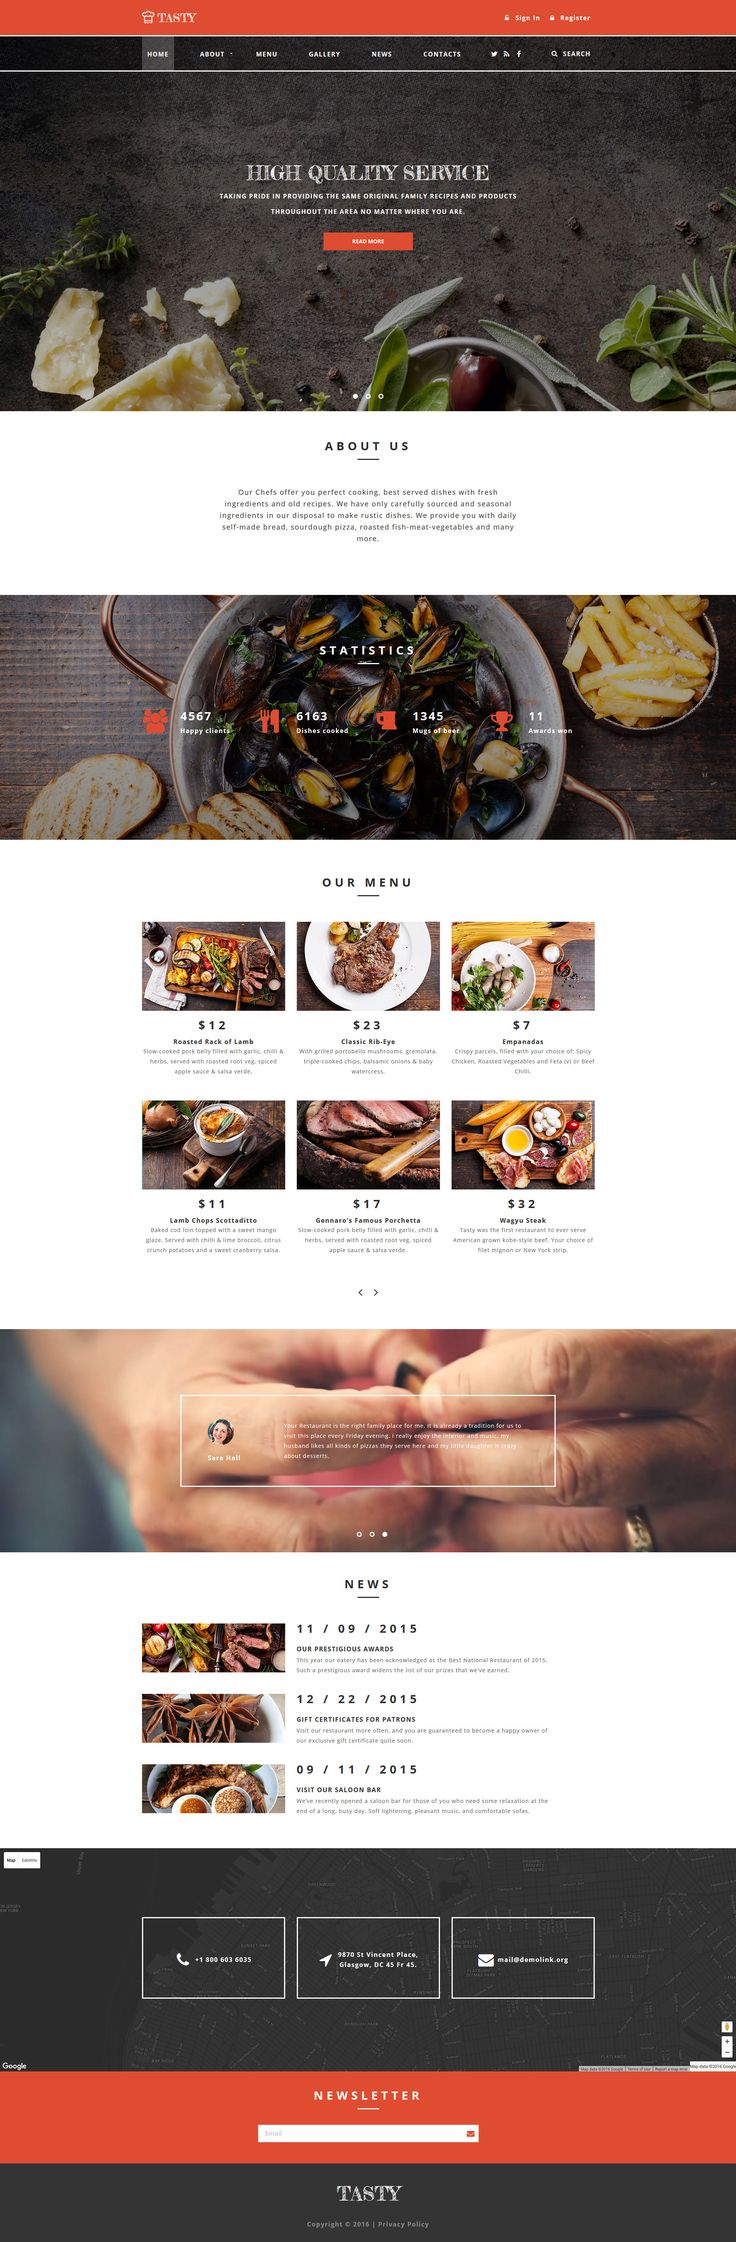 Cafe and Restaurant Responsive Website Template #58809 http://www.templatemonster.com/website-templates/cafe-and-restaurant-responsive-website-template-58809.html